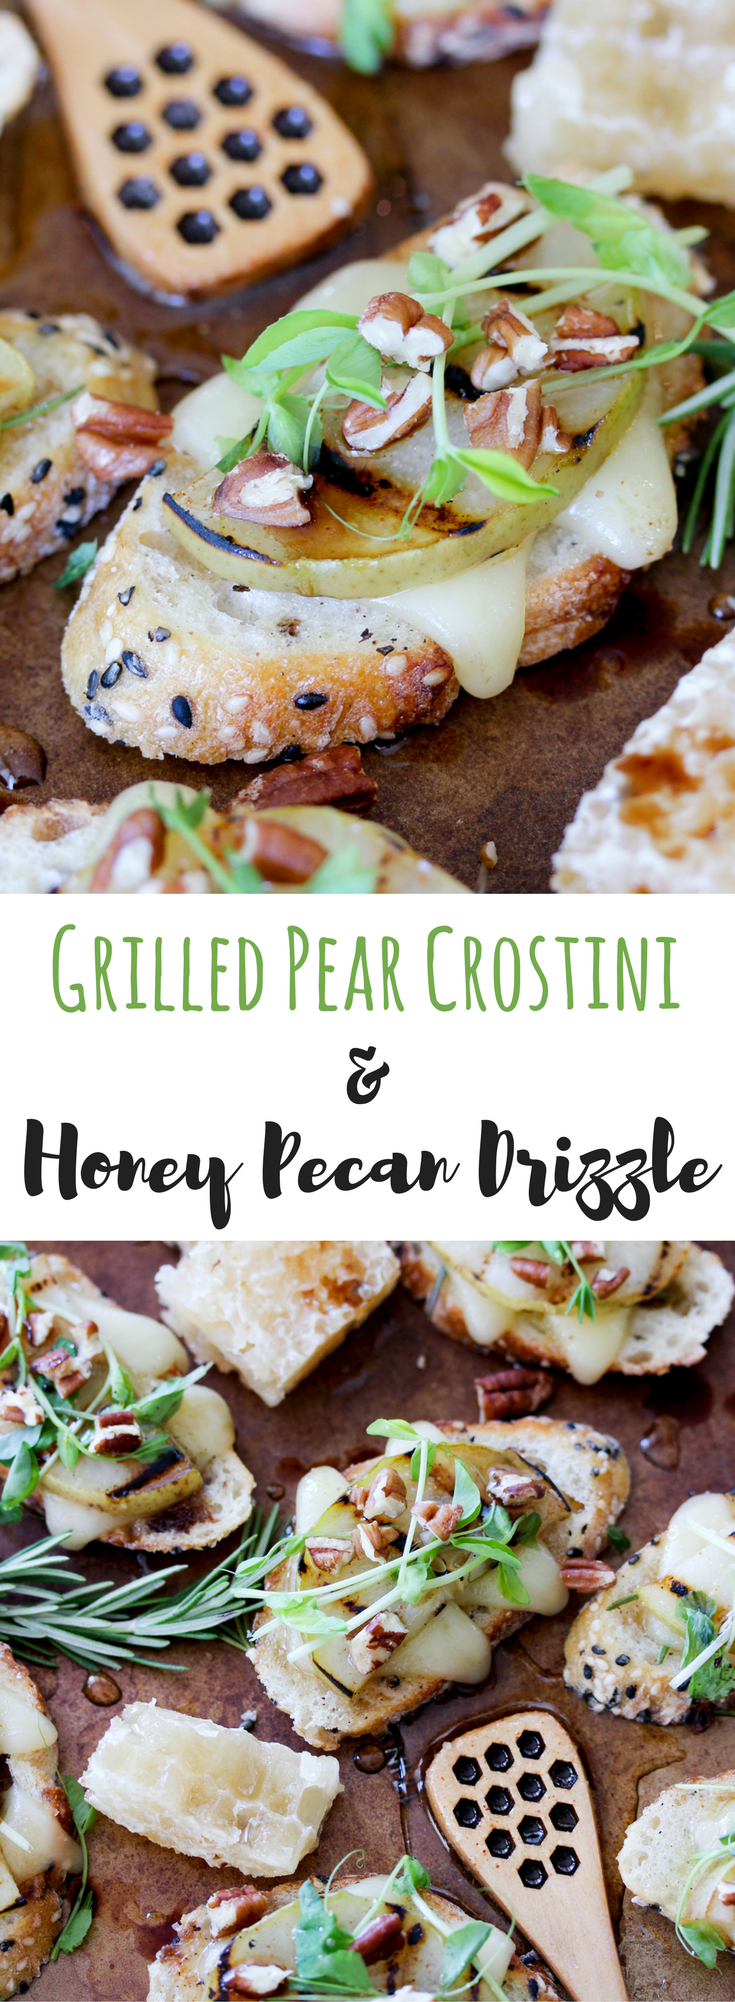 Grilled Pear Crostini Honey Pecan Drizzle // thislilpiglet.net